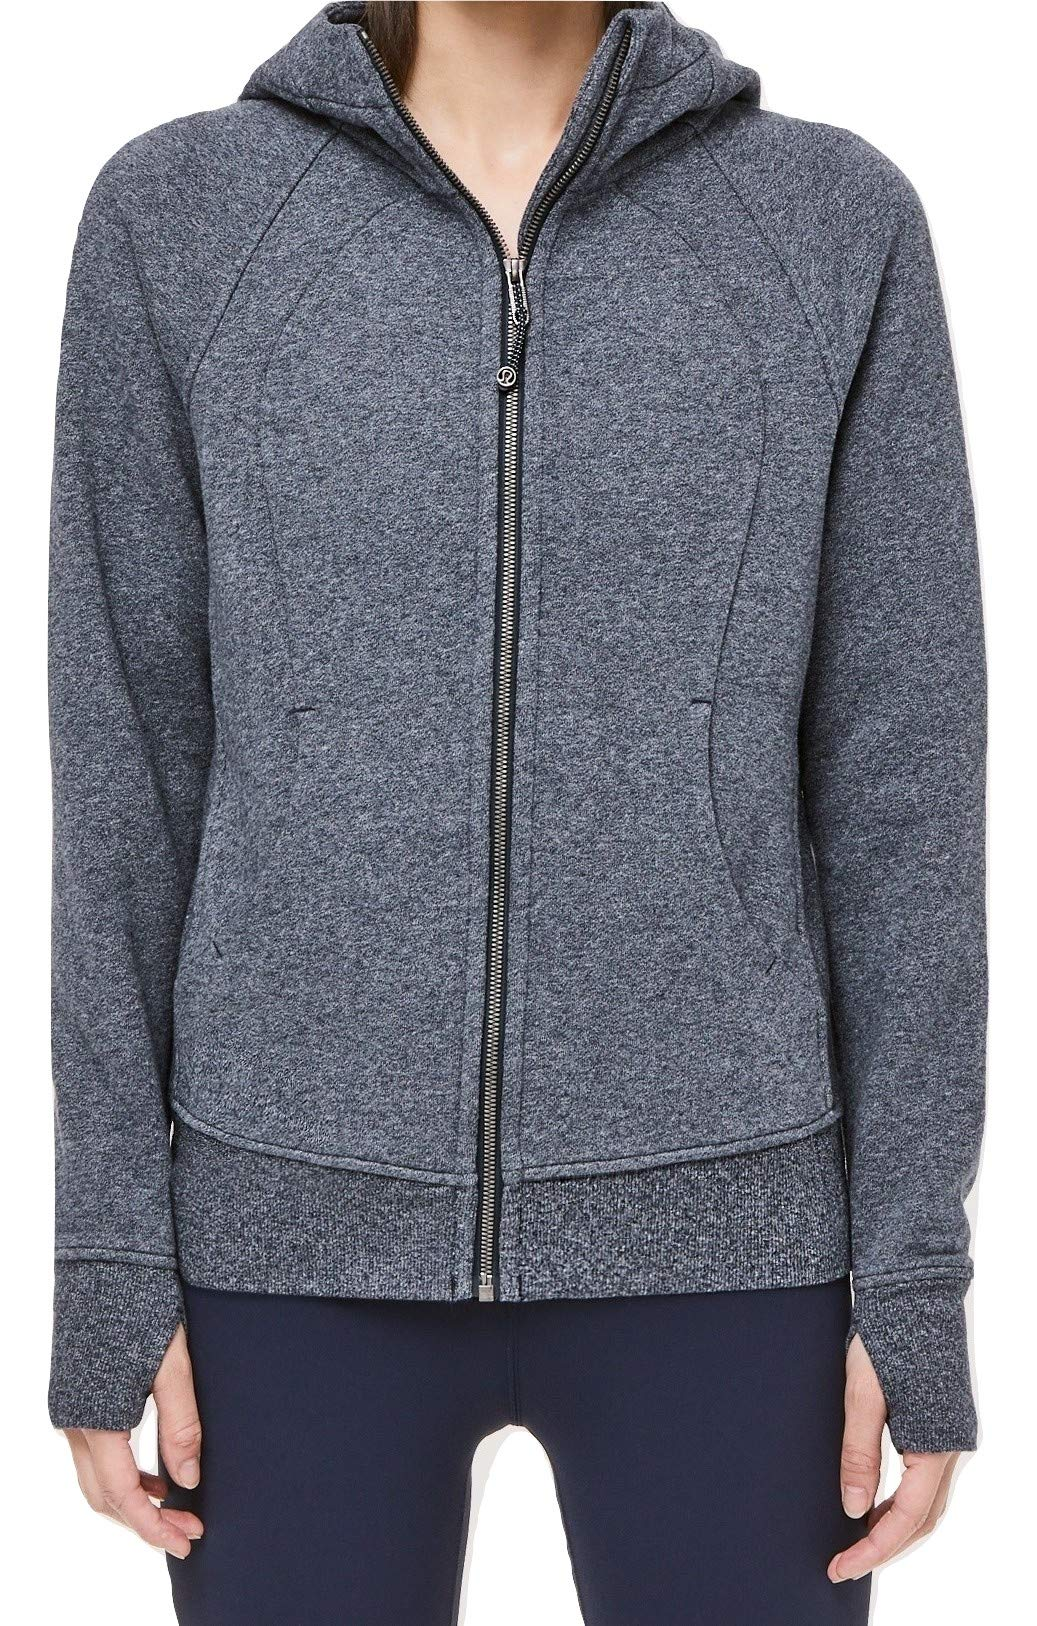 Lululemon Scuba Hoodie (Heathered Speckled True Navy, 2)